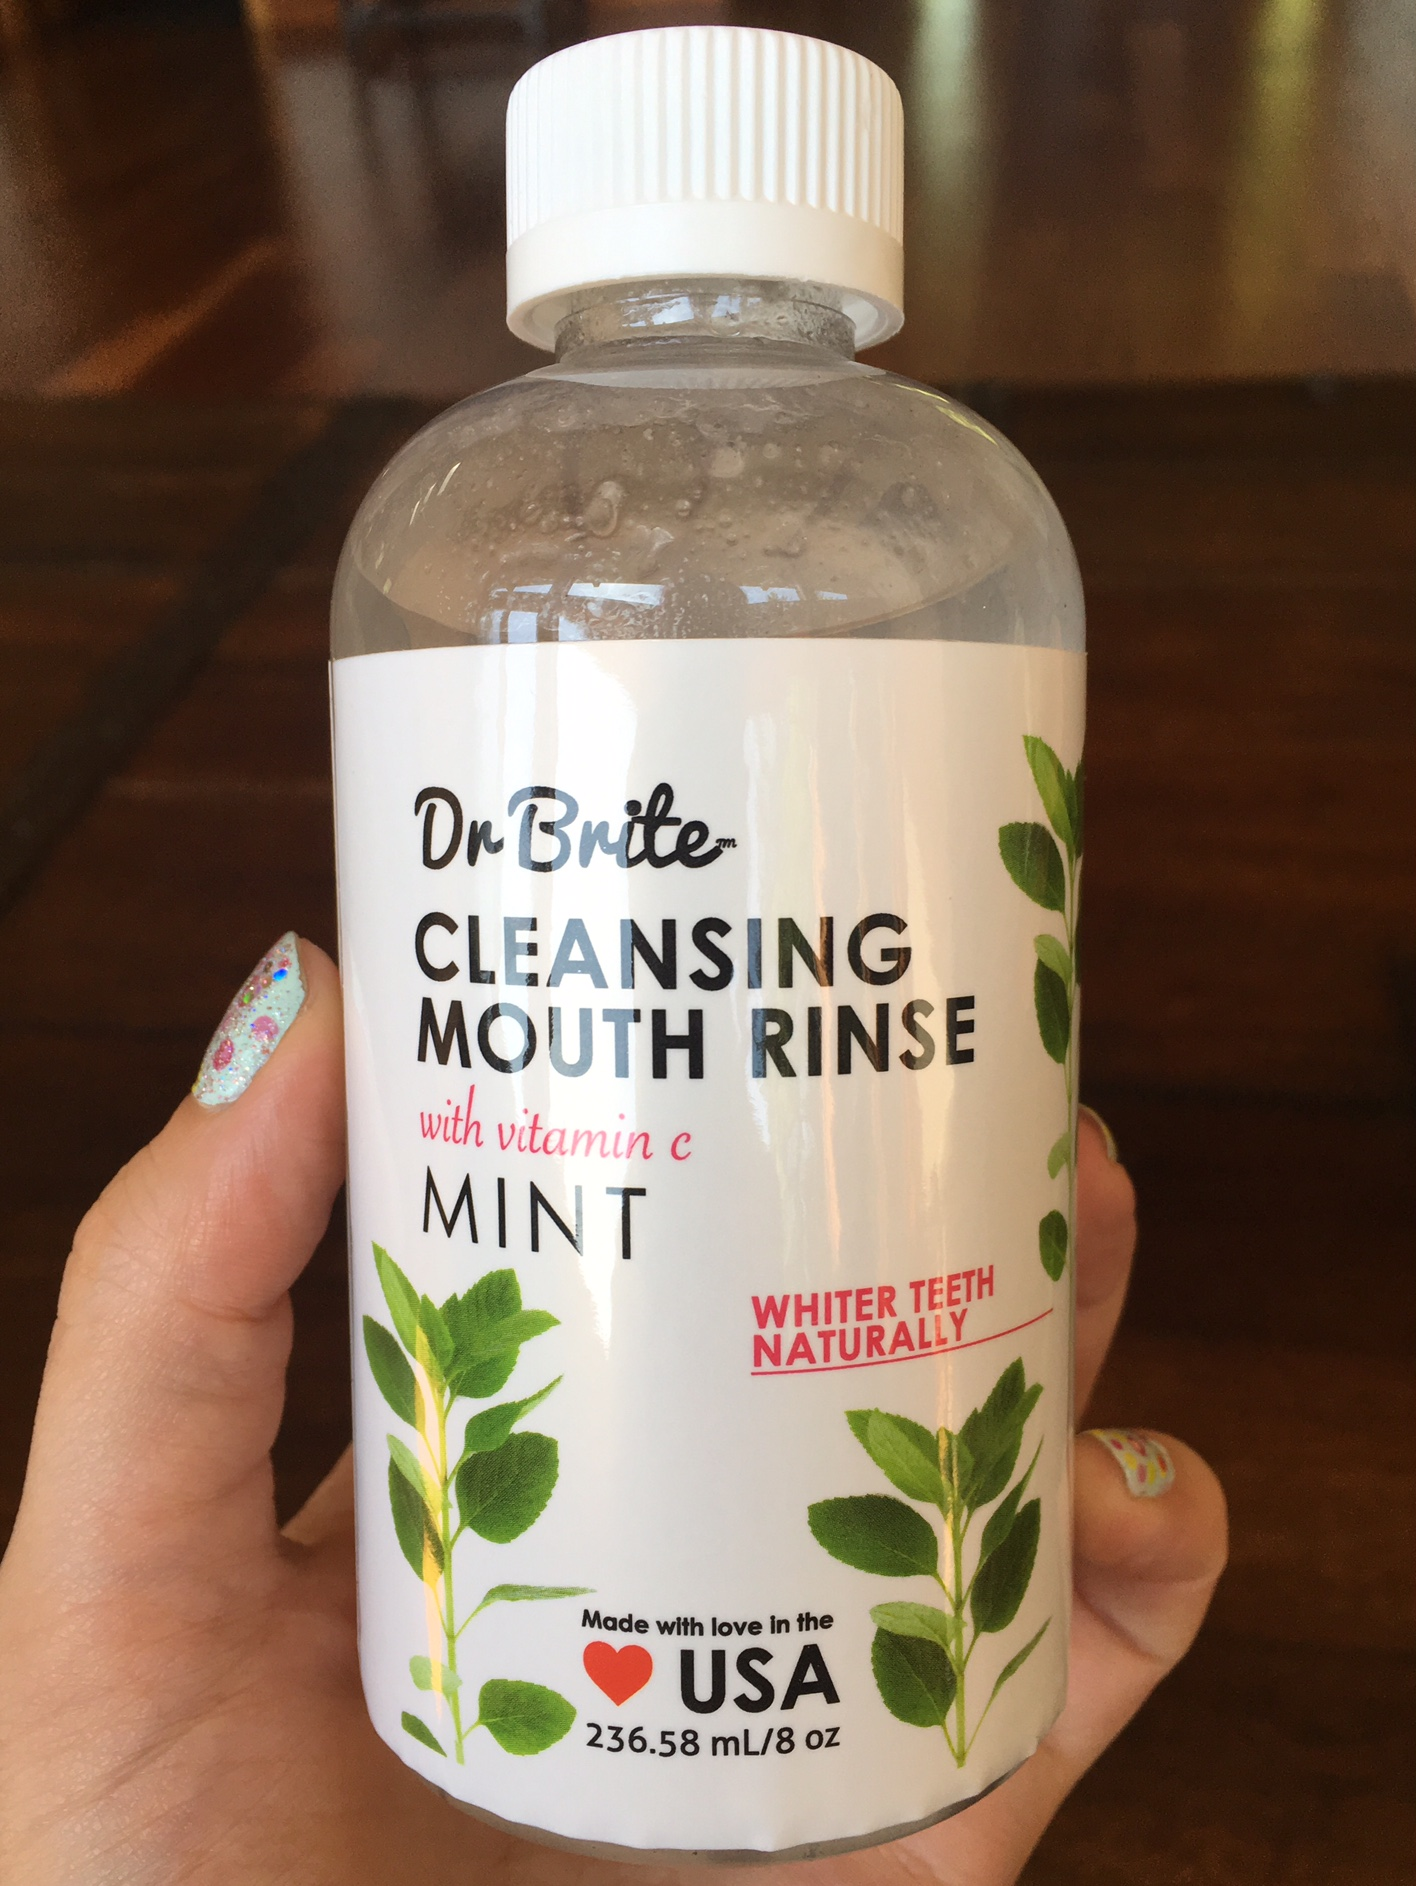 Dr Brite Cleansing Mouth Rinse